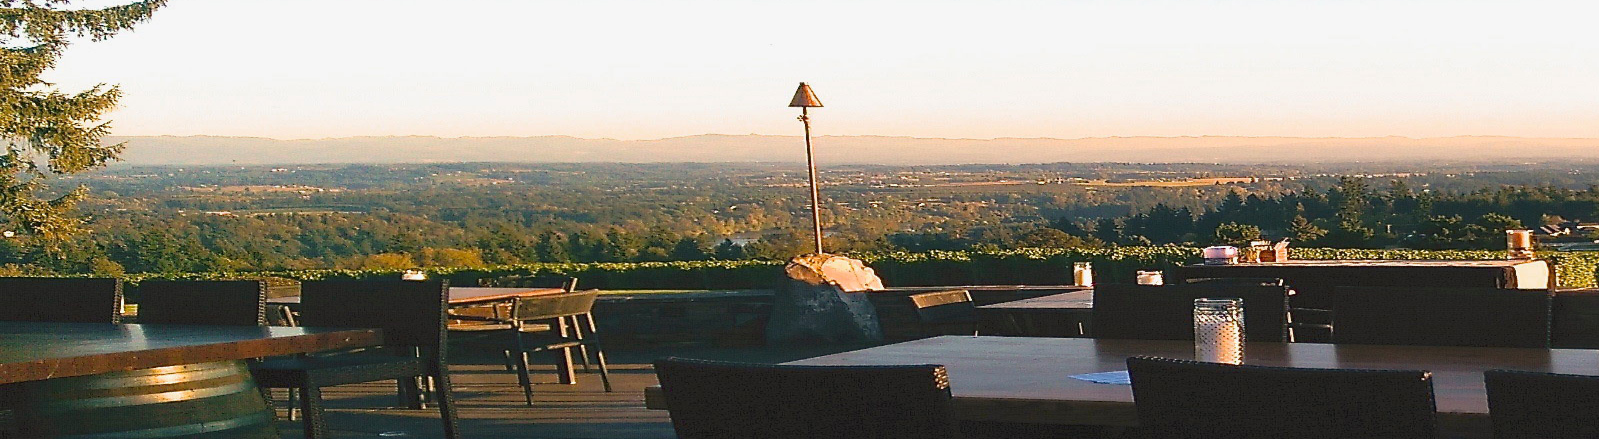 Tabletops resting on wine barrels fill Pete's Mountain Winery patio overlooking Willamette Valley in Mt. Hood Territory